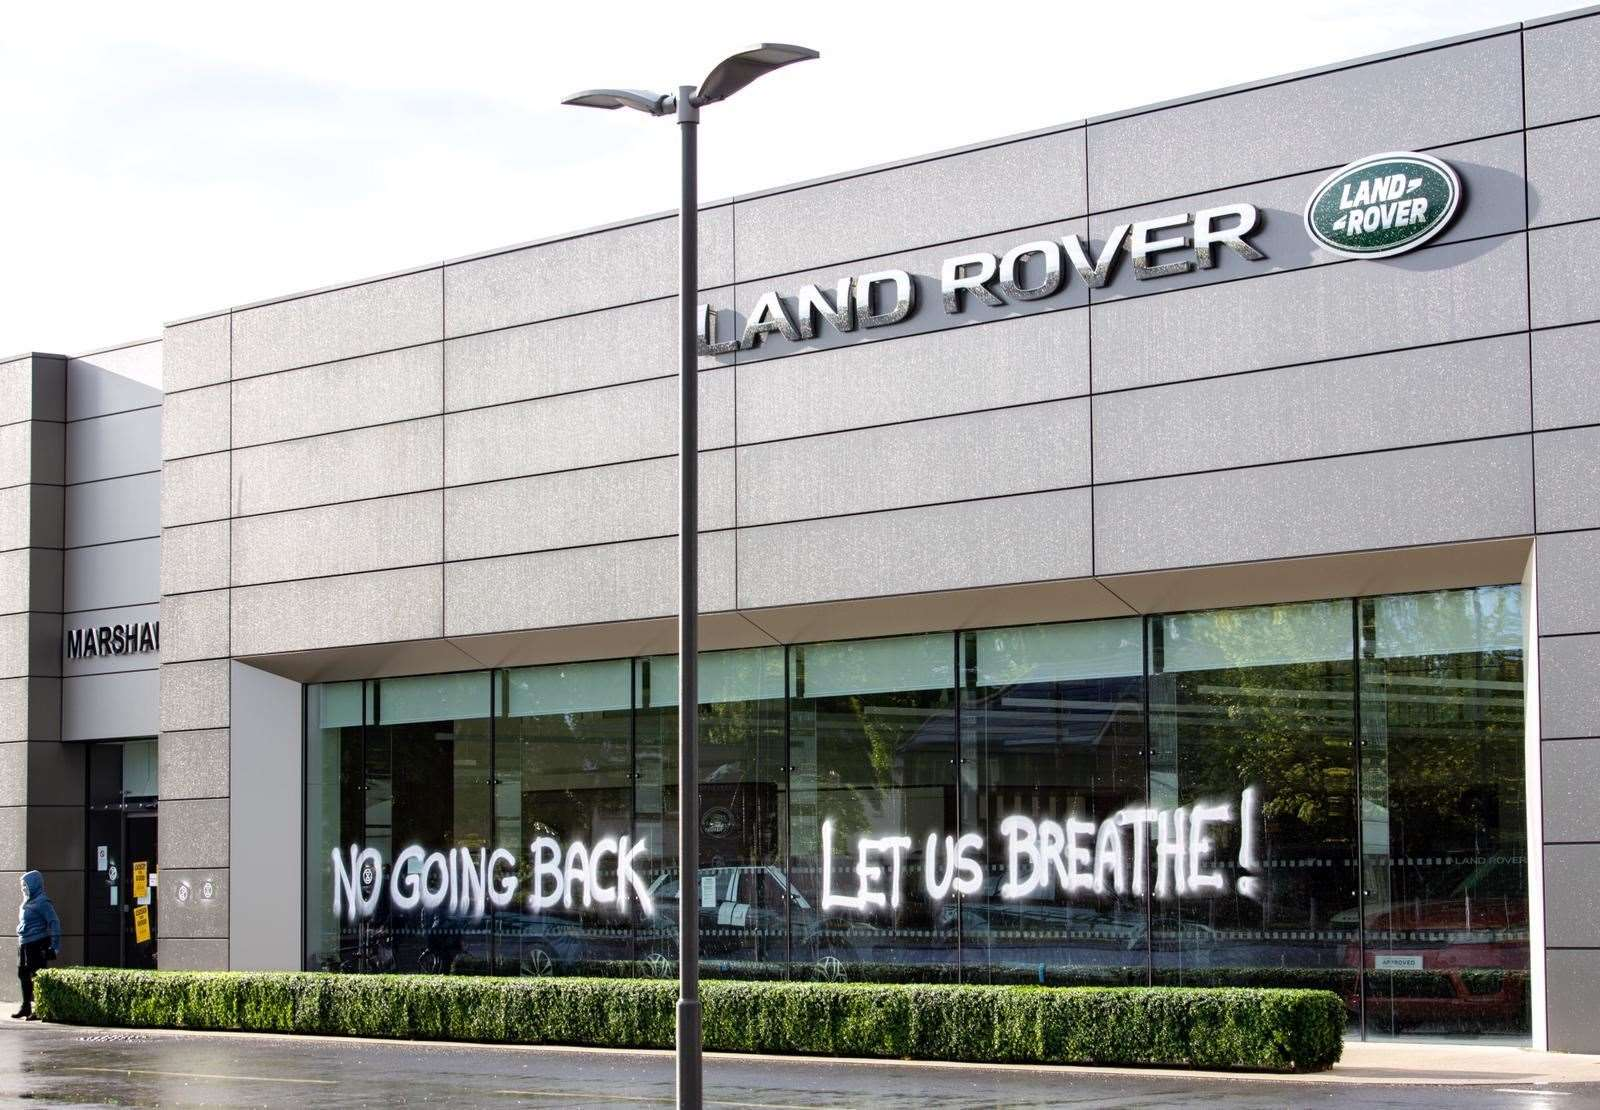 The Marshall Range Rover dealership on Newmarket Road following the protest